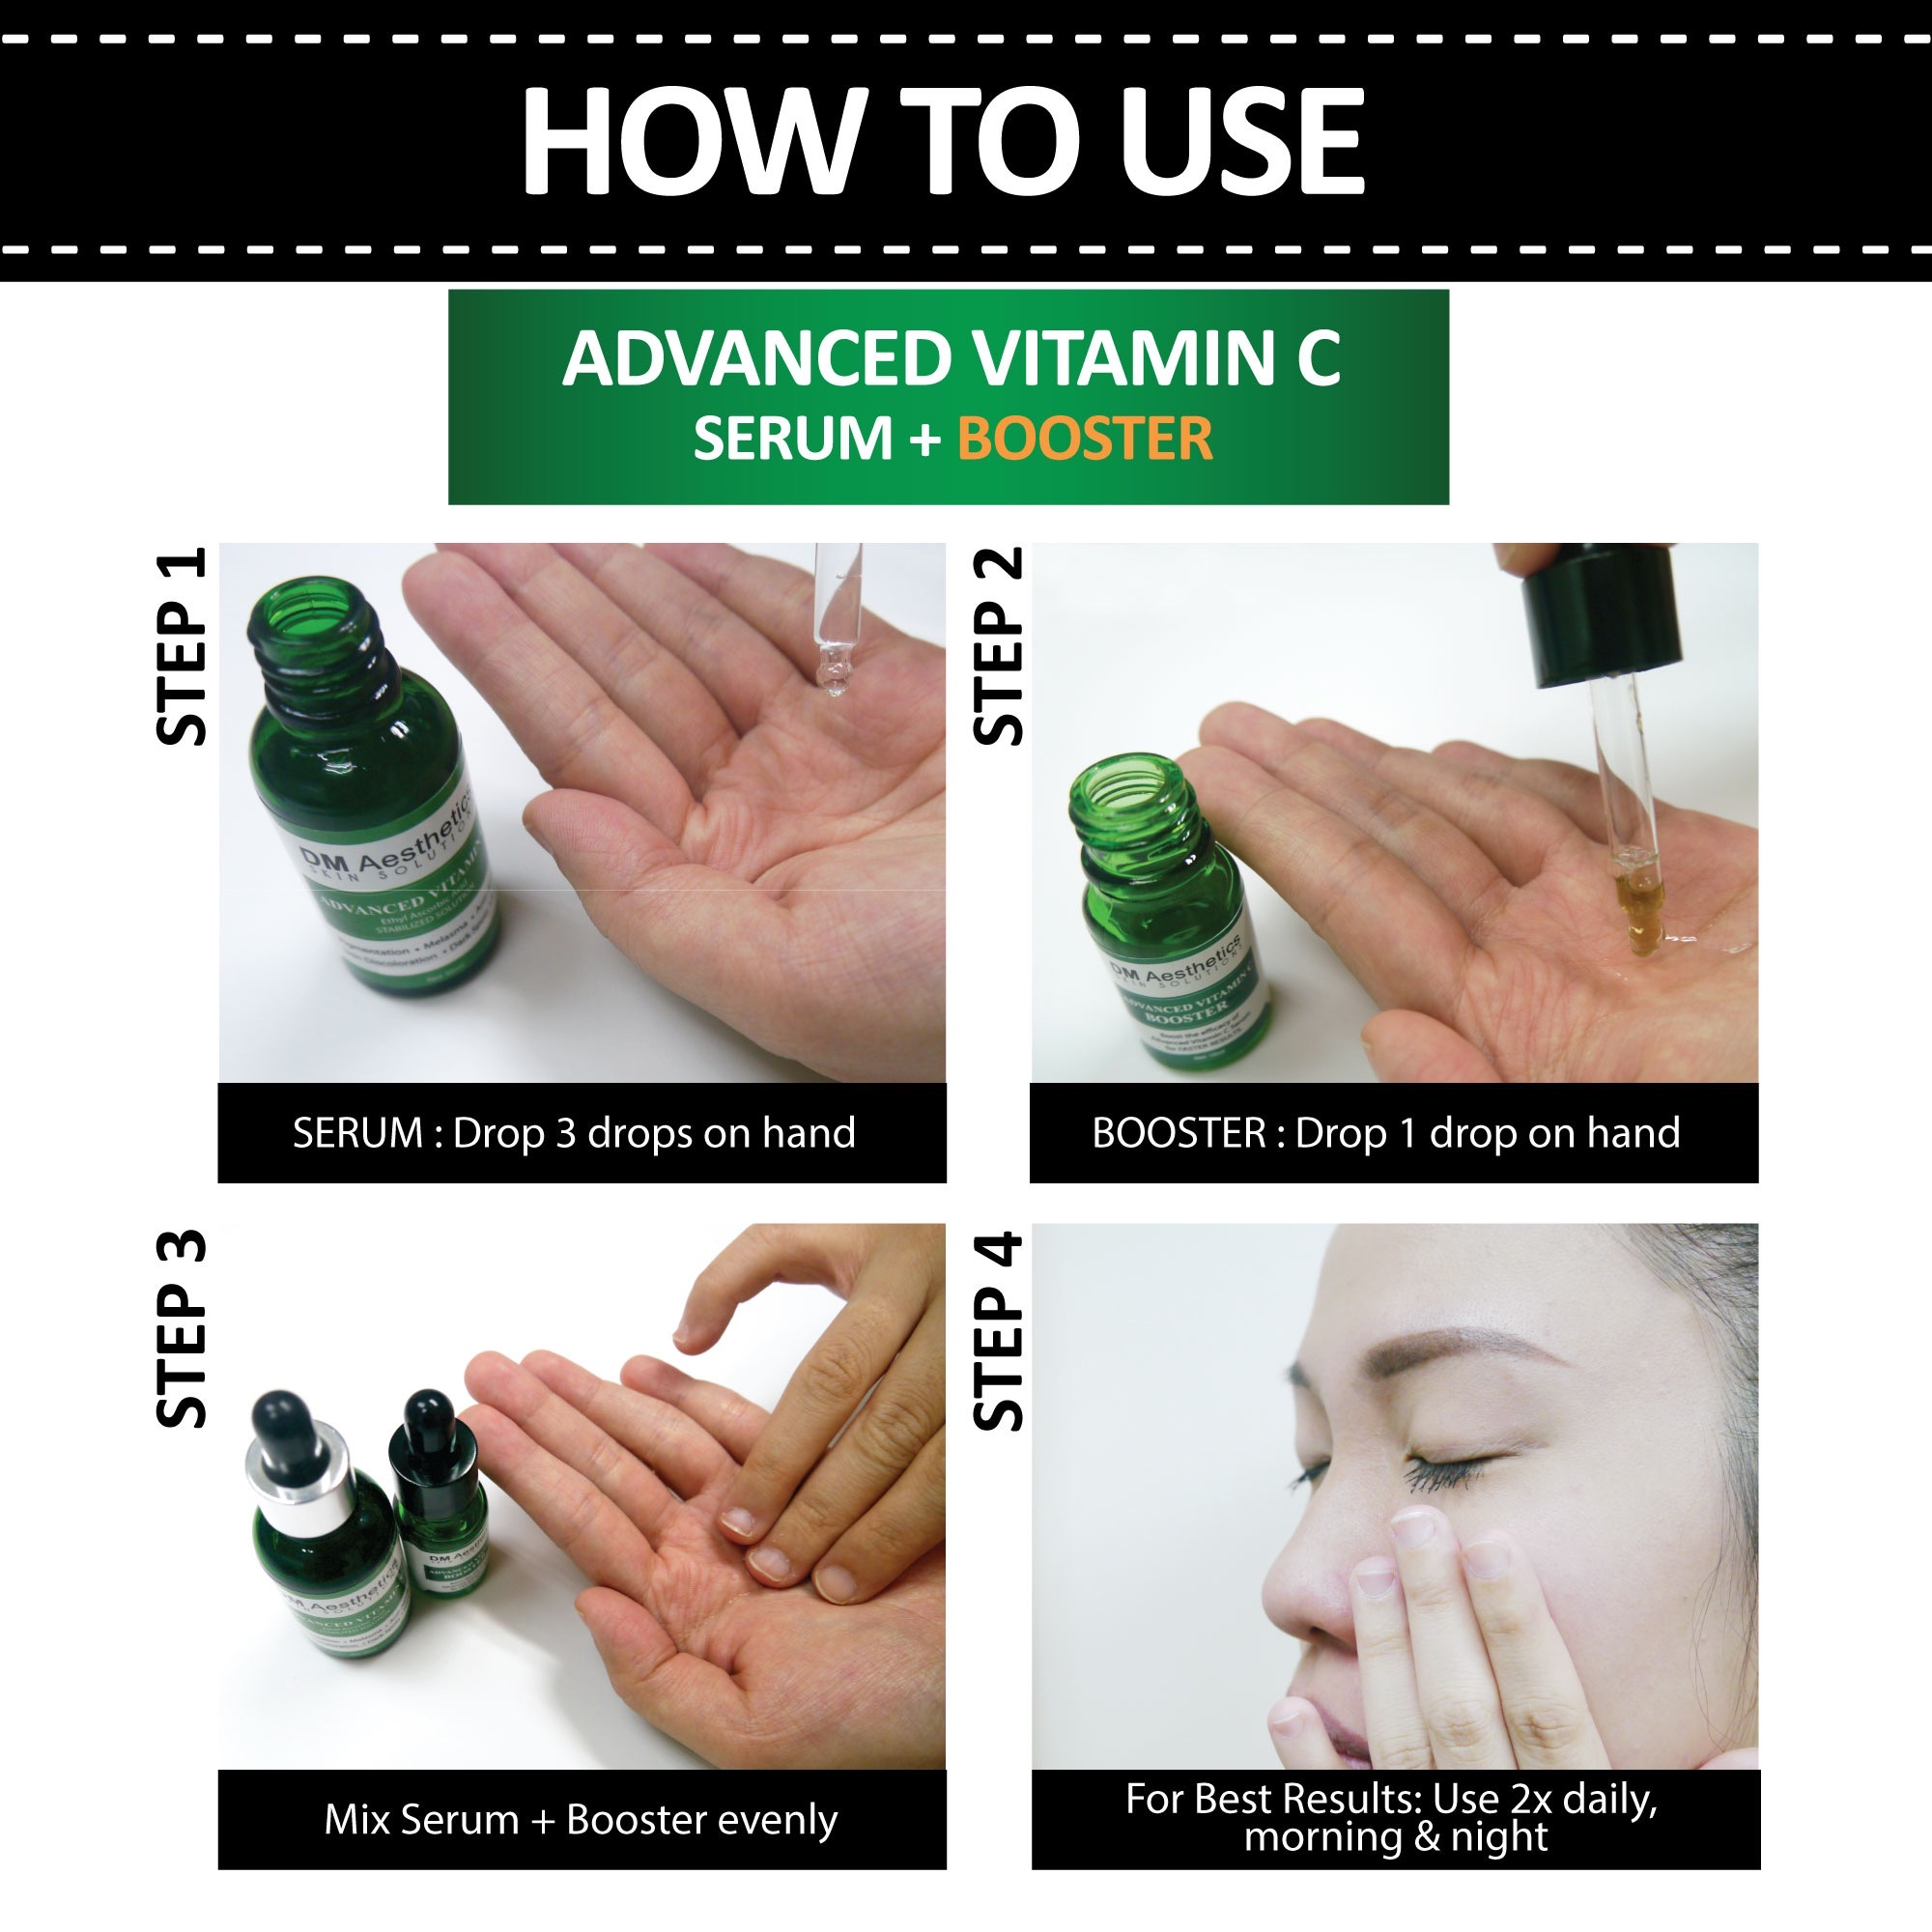 DMA VIT C BOOSTER HOW TO USE.JPG